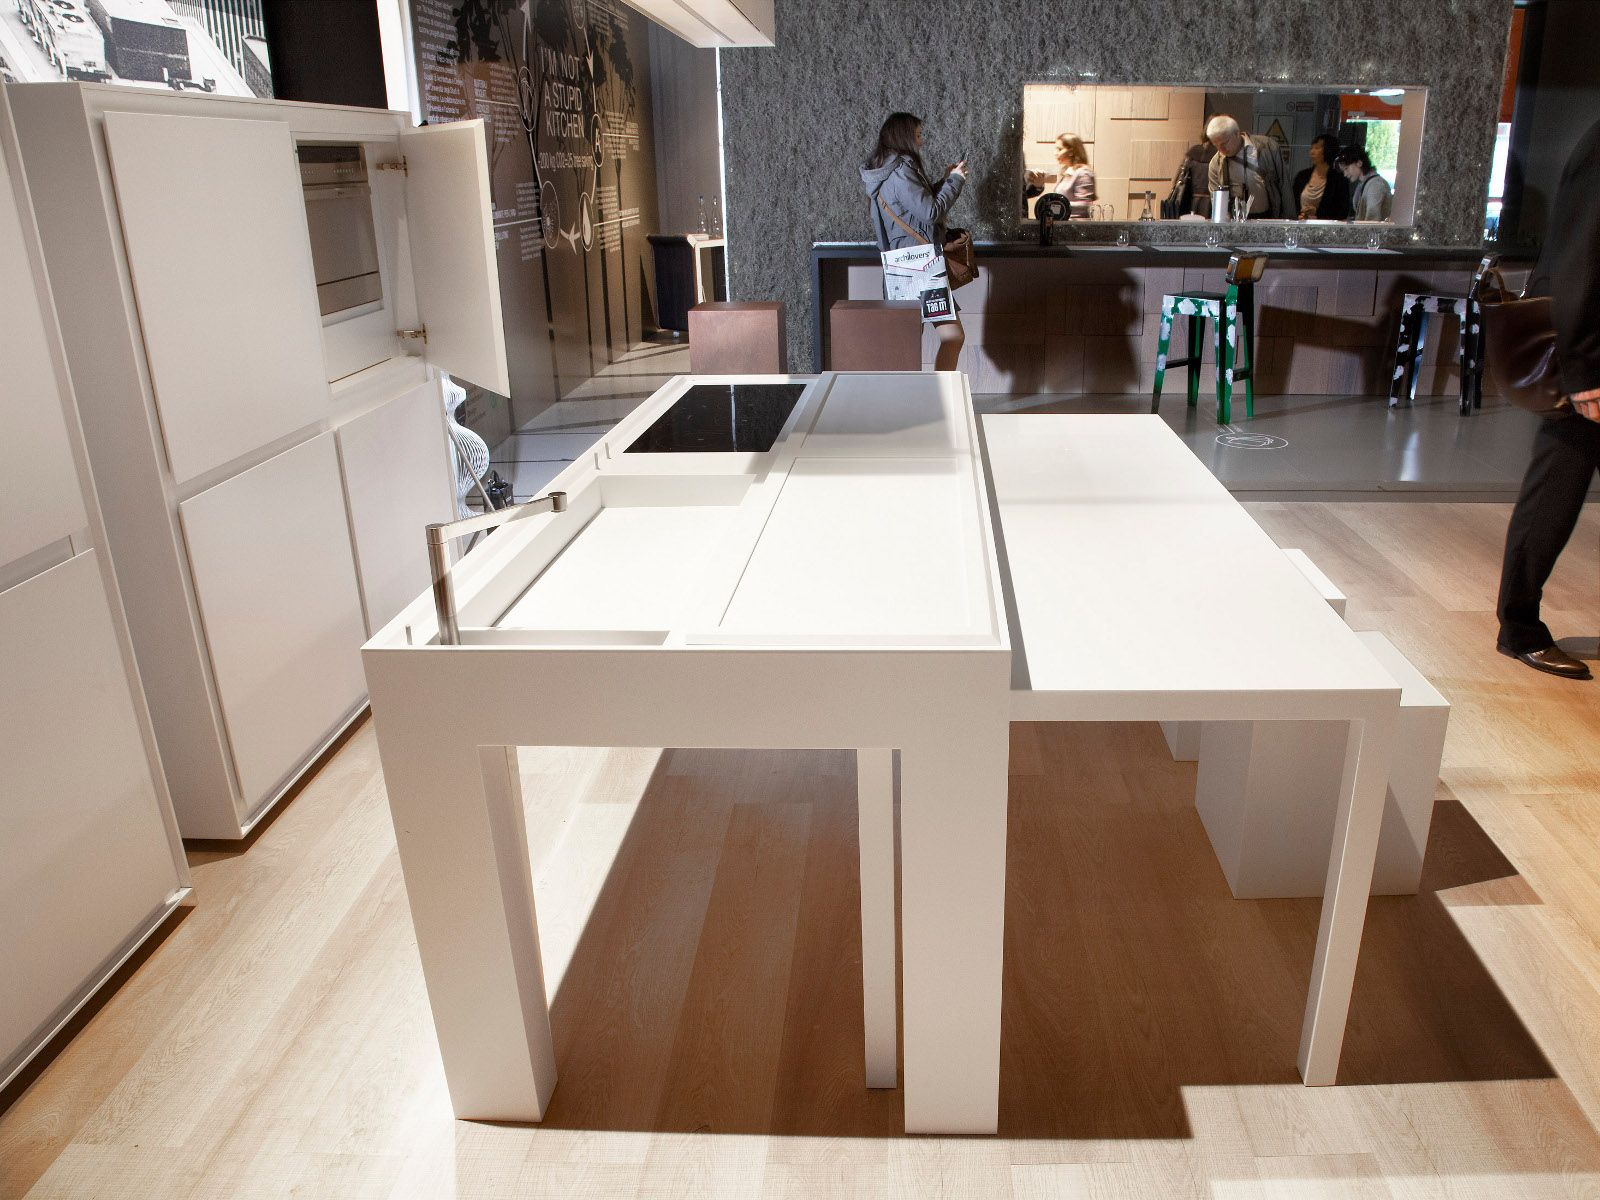 Cuisine avec lot sans poign es off kitchen by tm italia - Table centrale cuisine ...